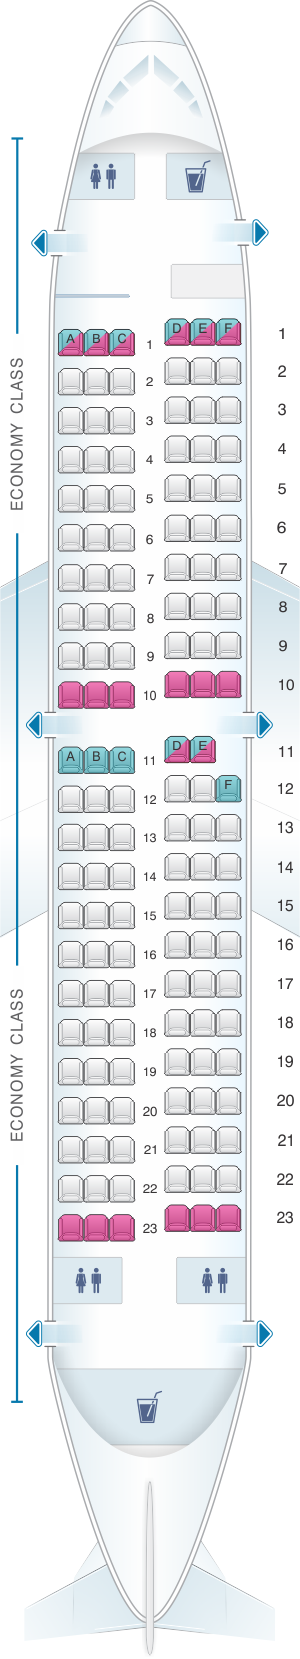 Seat Map Southwest Airlines Boeing B737 300 137pax Malaysia Airlines Kingfisher Airlines China Eastern Airlines